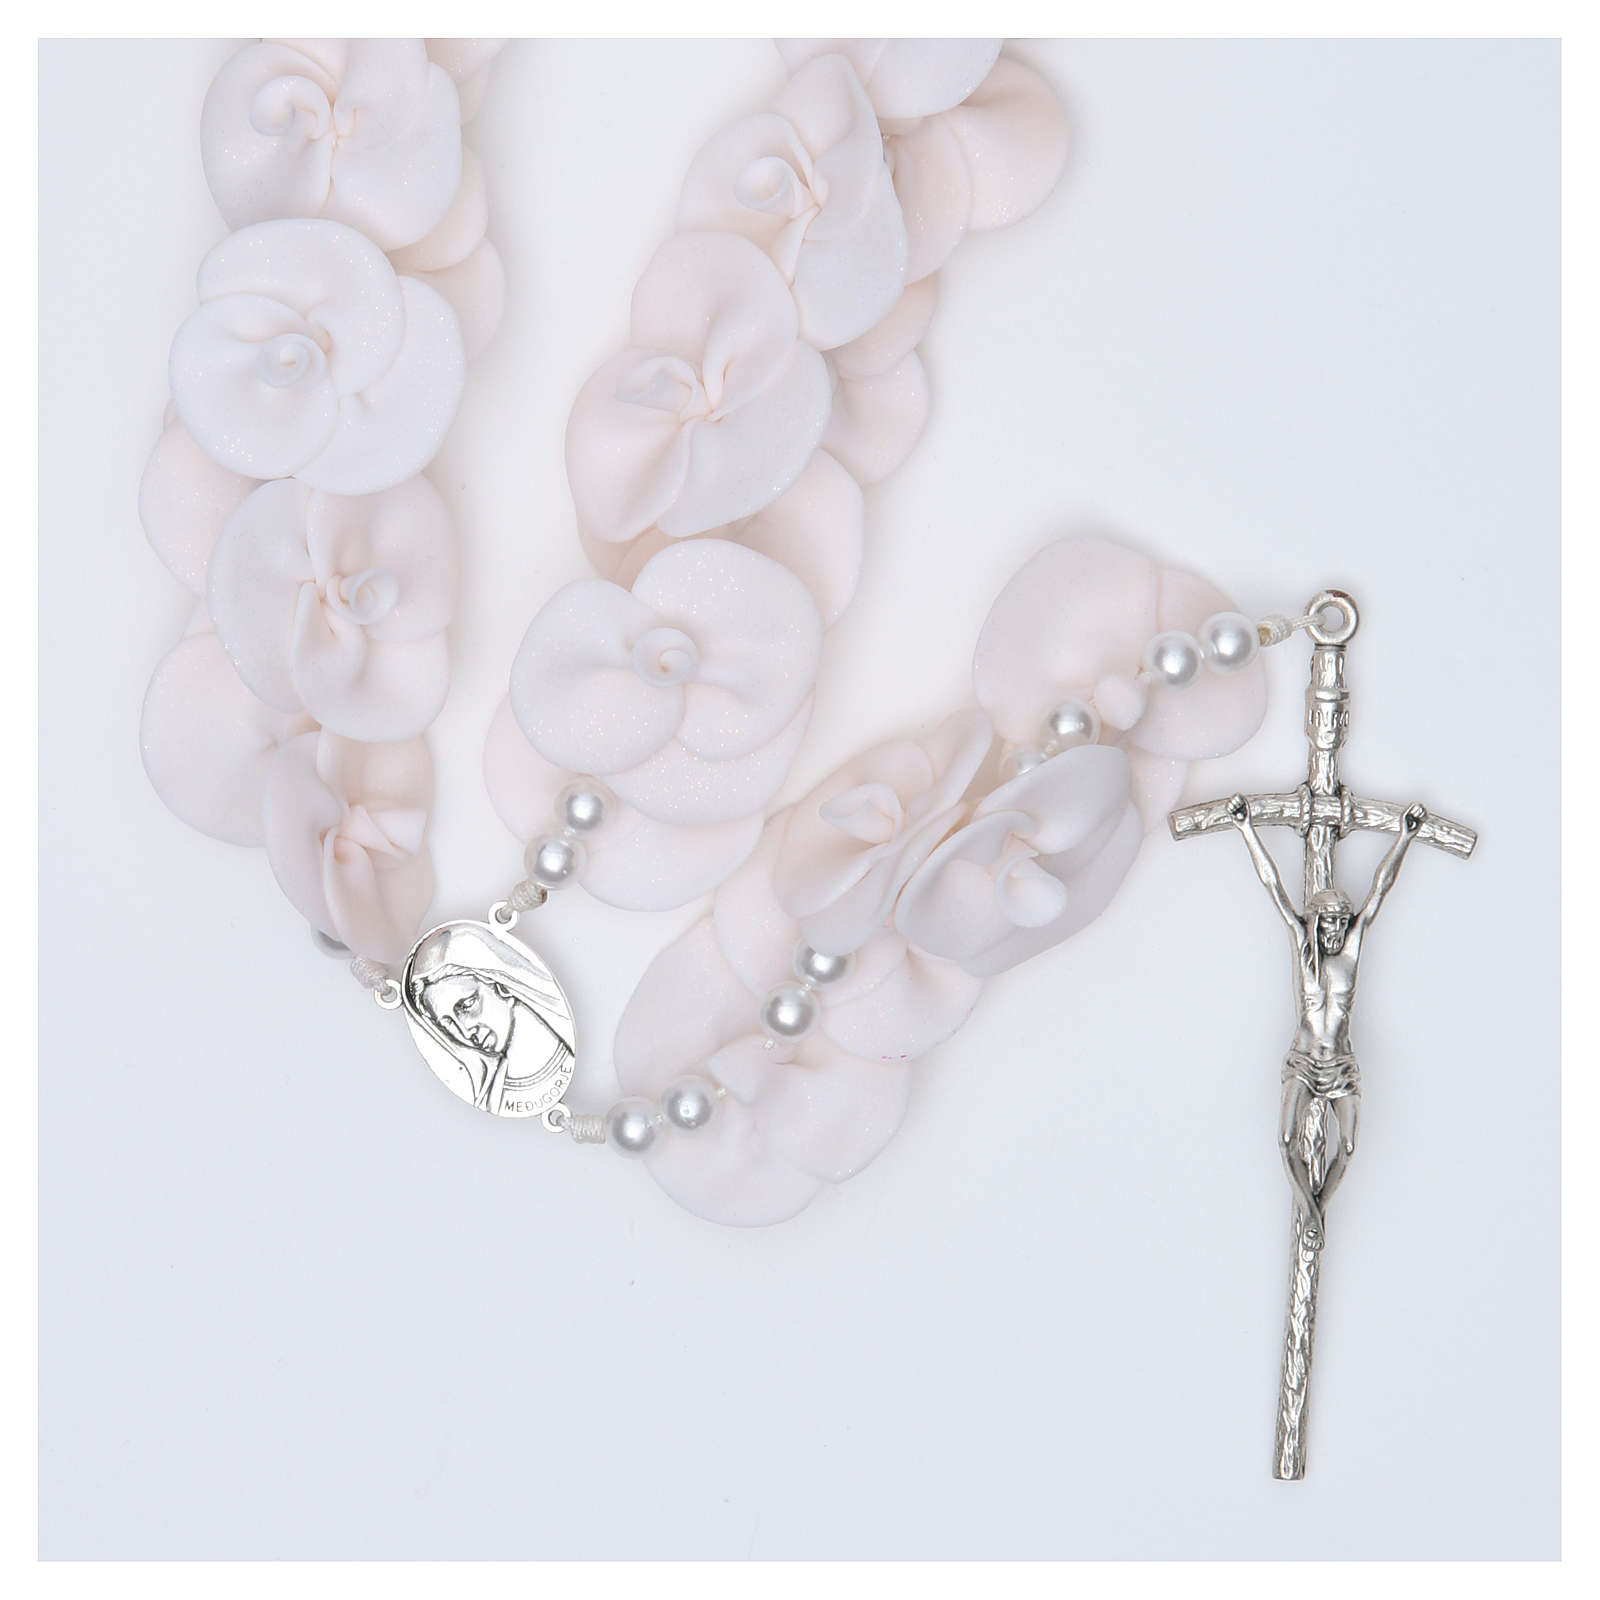 Headboard Medjugorje rosary with white roses 4